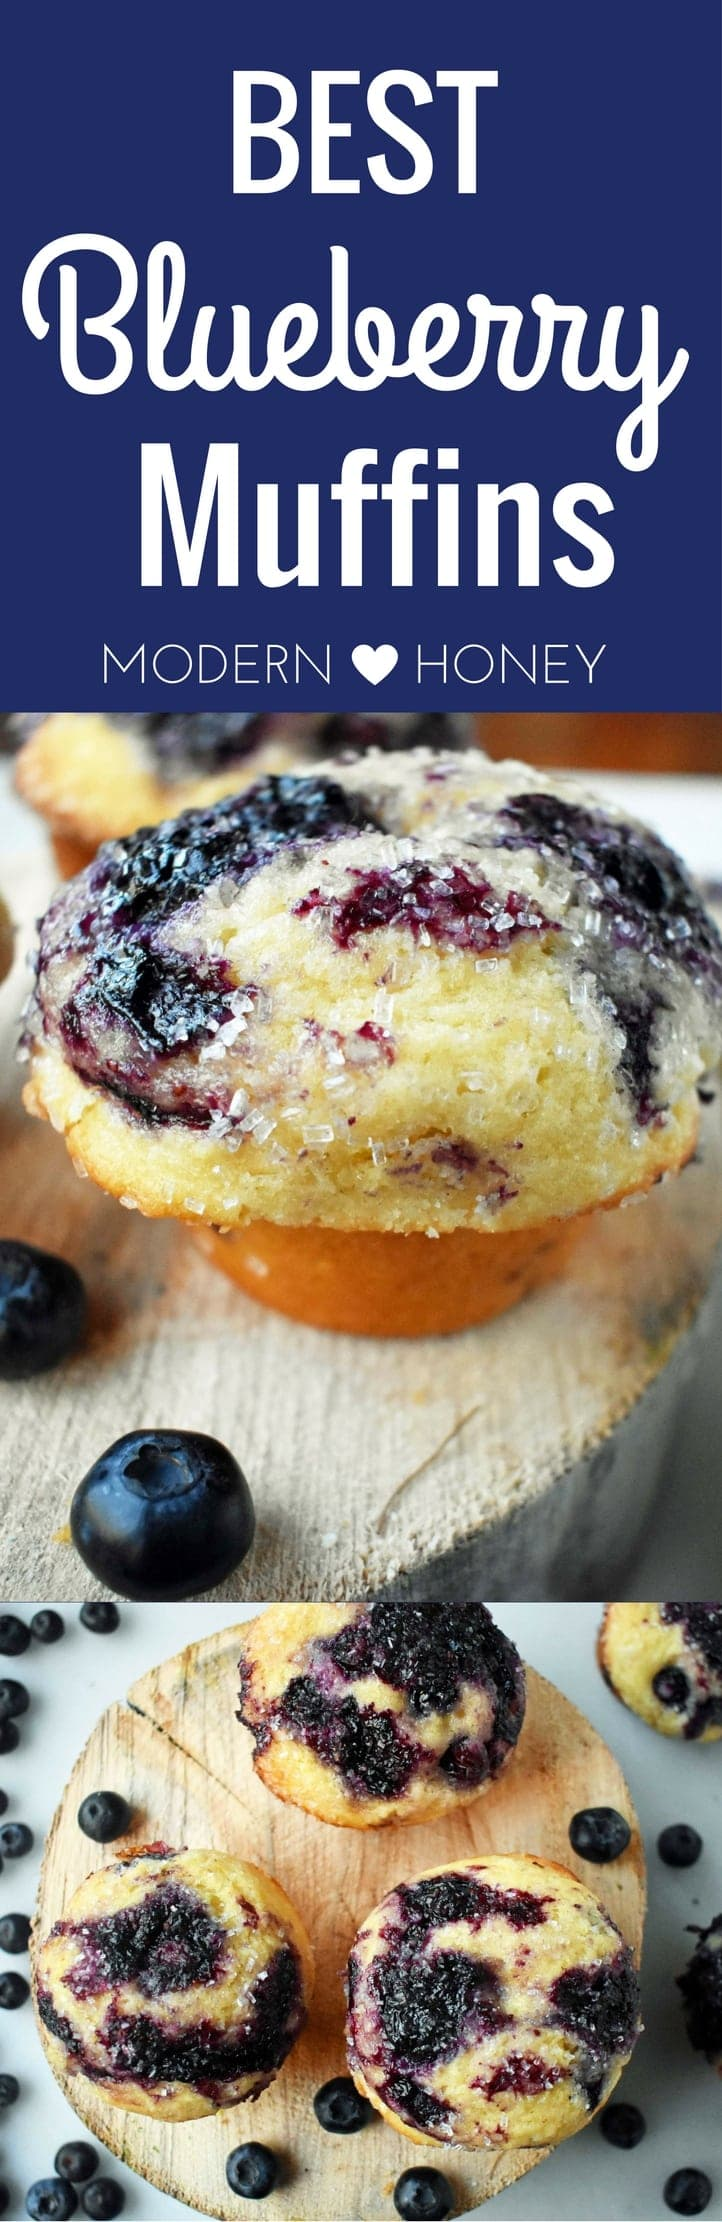 The BEST Blueberry Muffins by Modern Honey. Made with fresh blueberries, buttermilk, and a combination of sweet butter and oil. The perfect blueberry muffin recipe! www.modernhoney.com